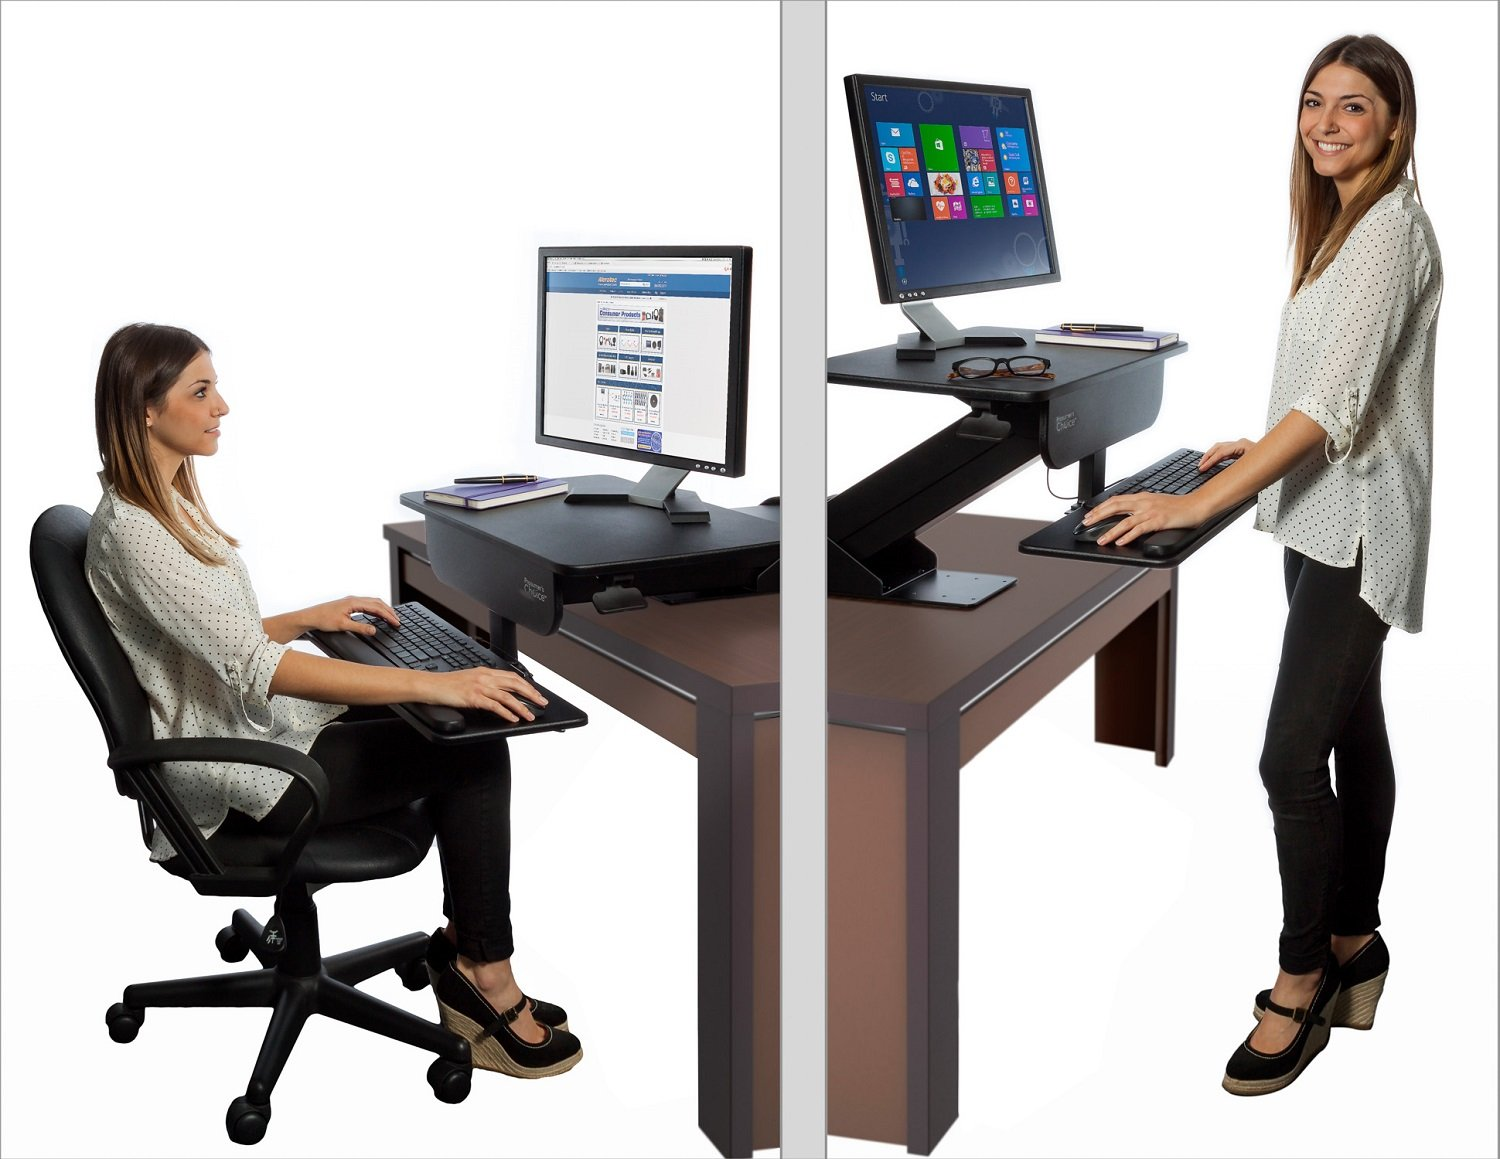 Amazoncom Prosumers Choice Adjustable Height Gas Spring Easy Lift - Computer stand for standing at desk